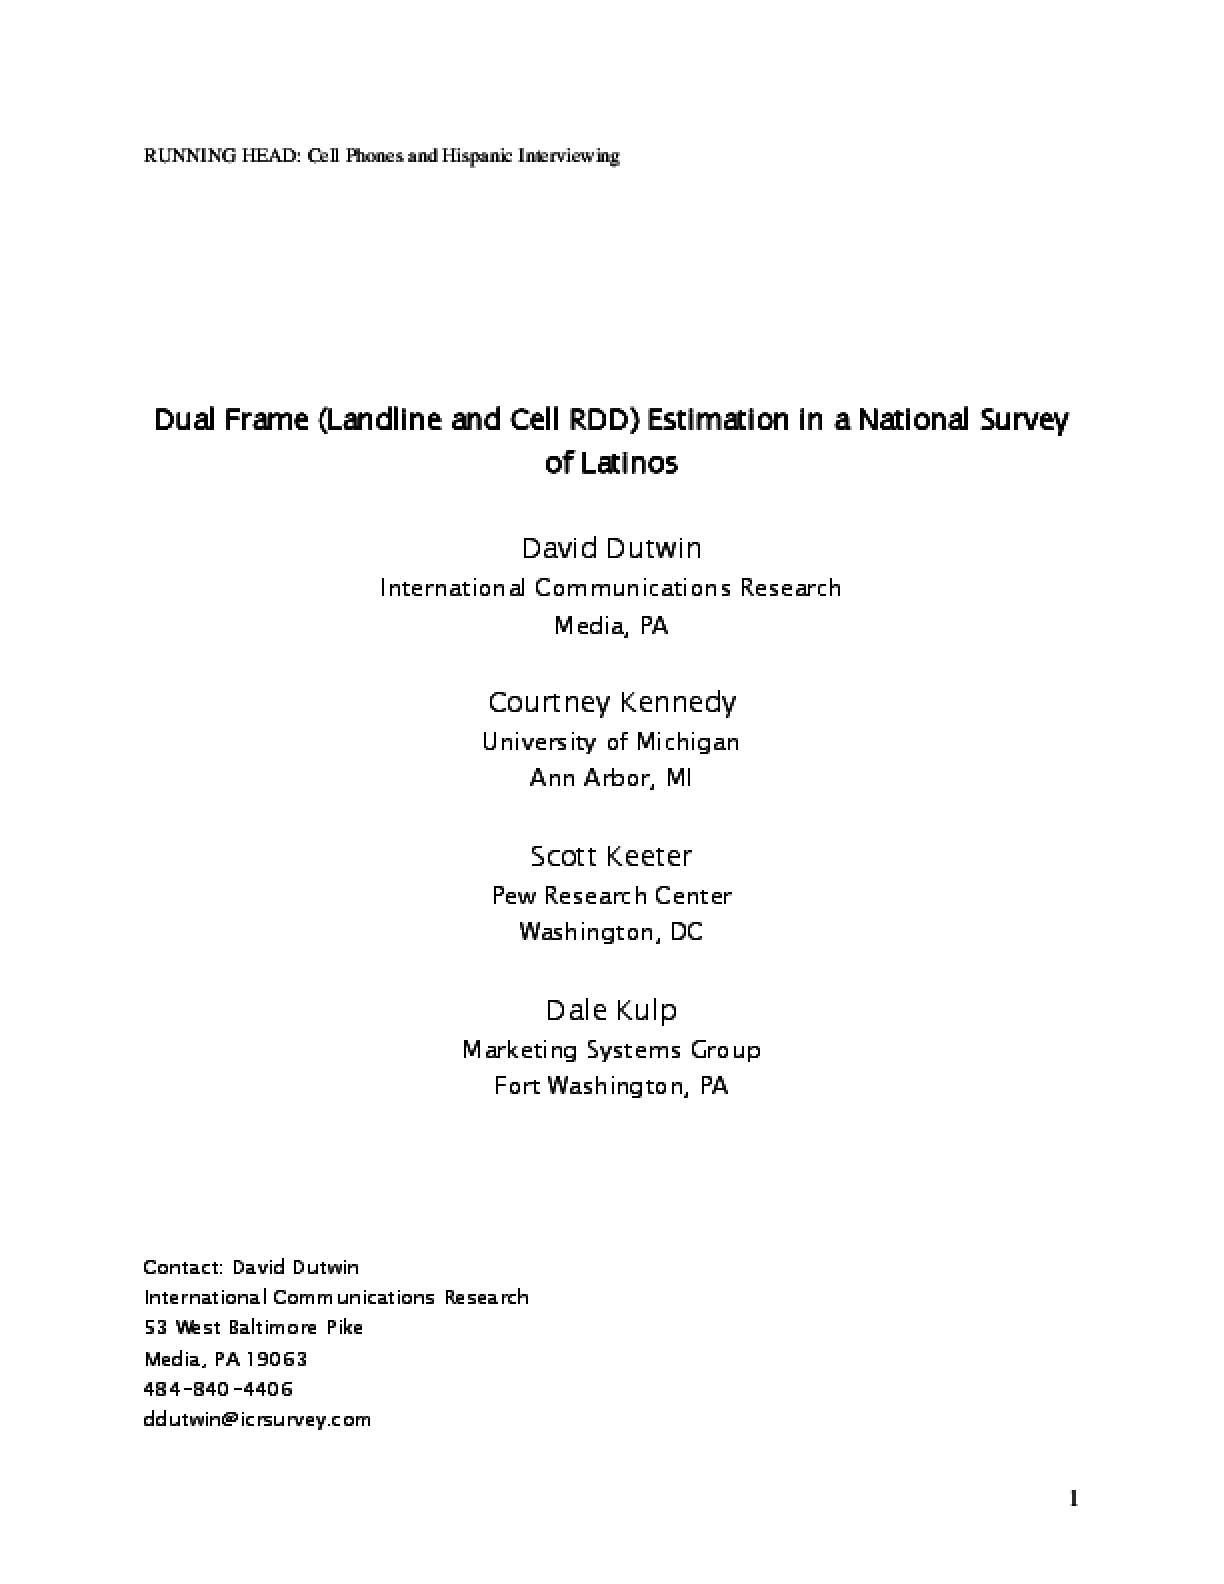 Dual Frame (Landline and Cell RDD) Estimation in a National Survey of Latinos